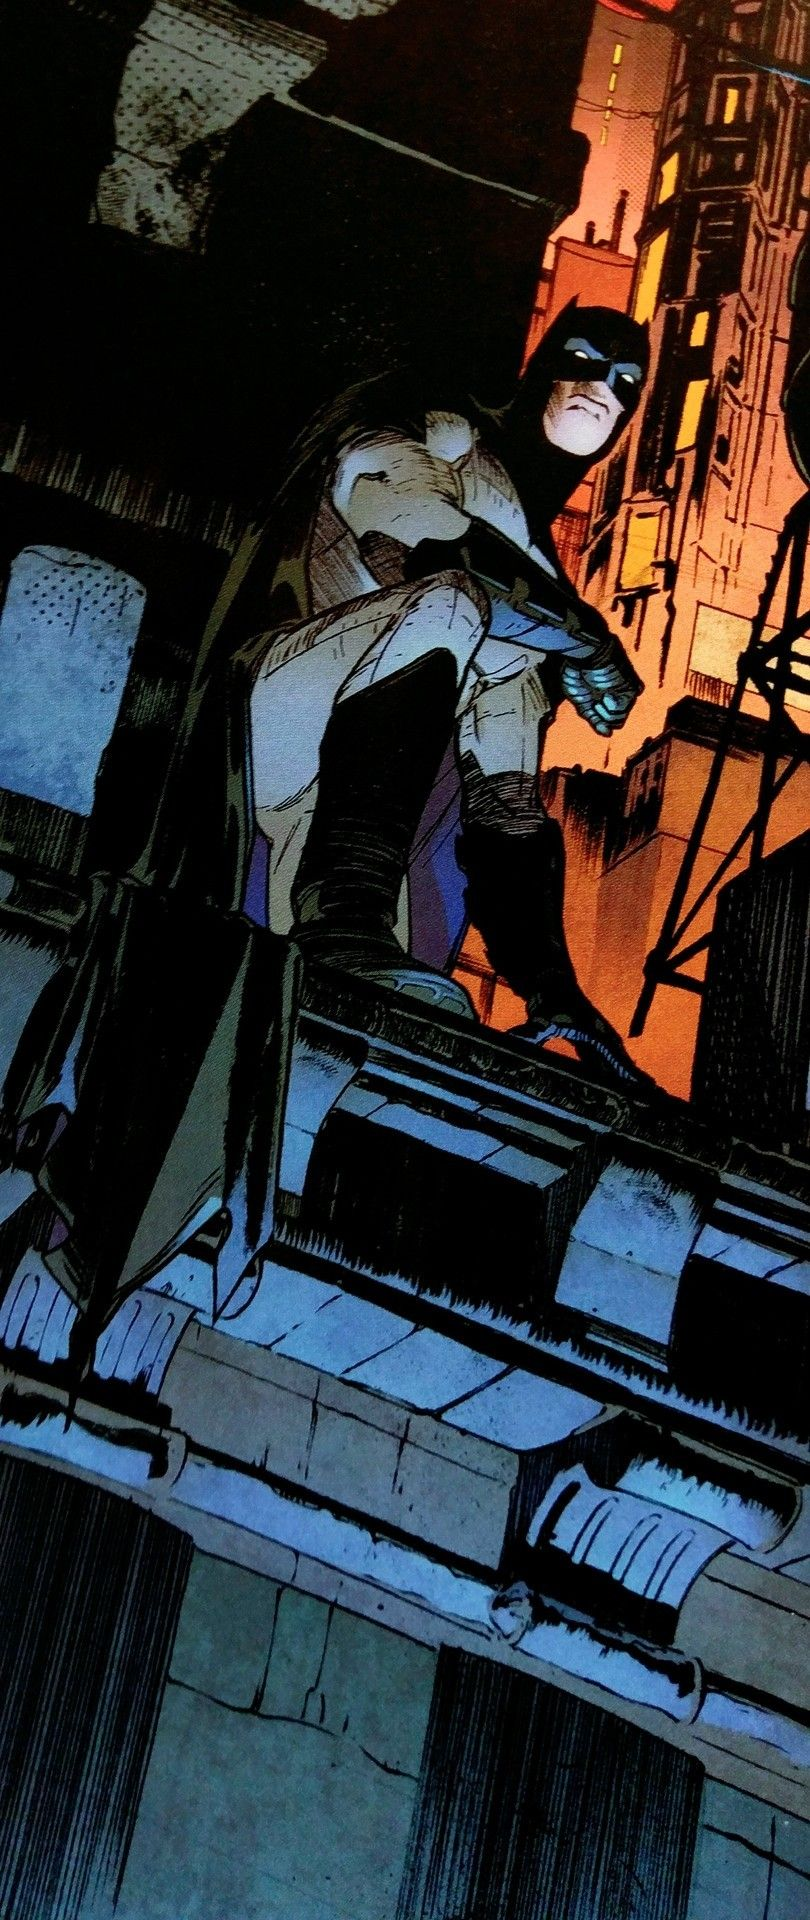 Great use of color on this panel comics